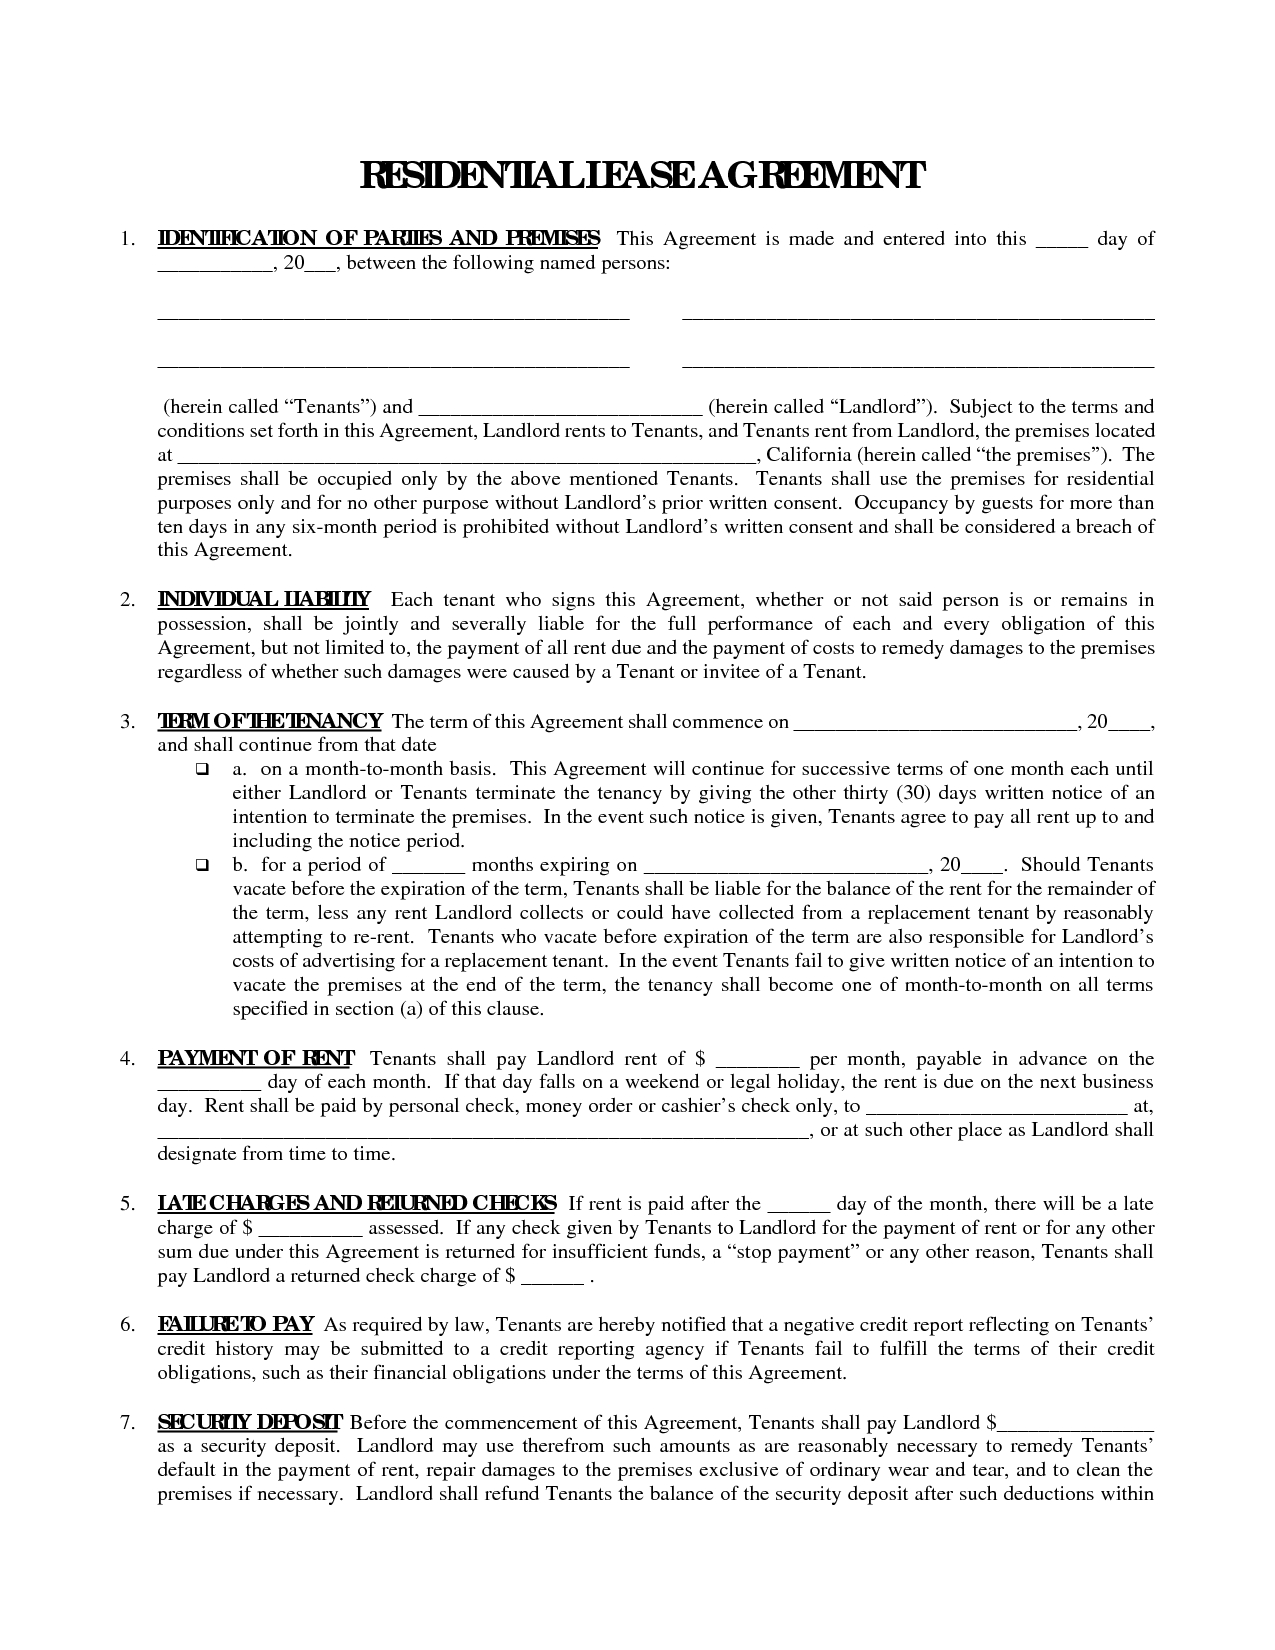 Printable Residential Free House Lease Agreement   Residential Lease - Free Printable California Residential Lease Agreement